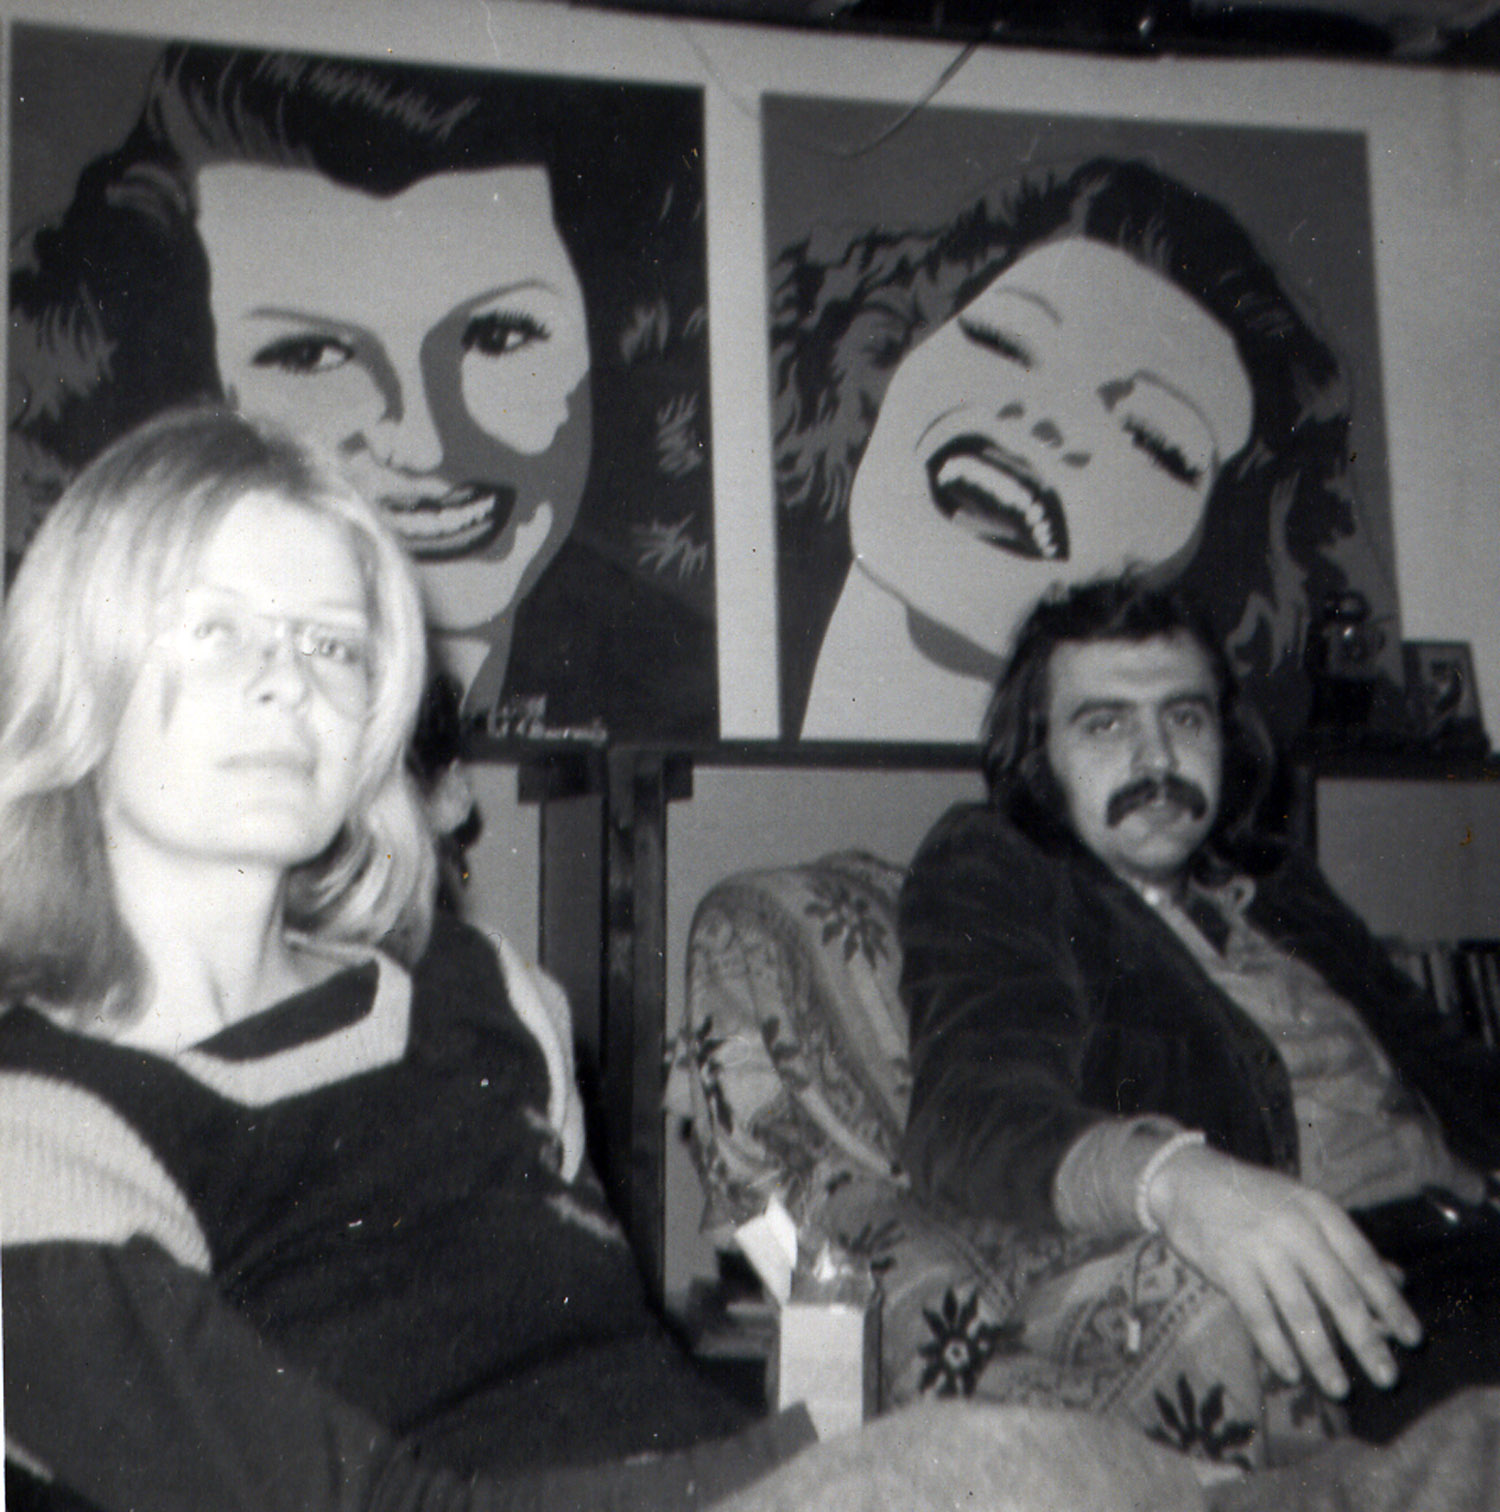 Carla Dee Ellis and Mike Shannon, c. 1970. Carla's paintings of Rita Heyworth in background.